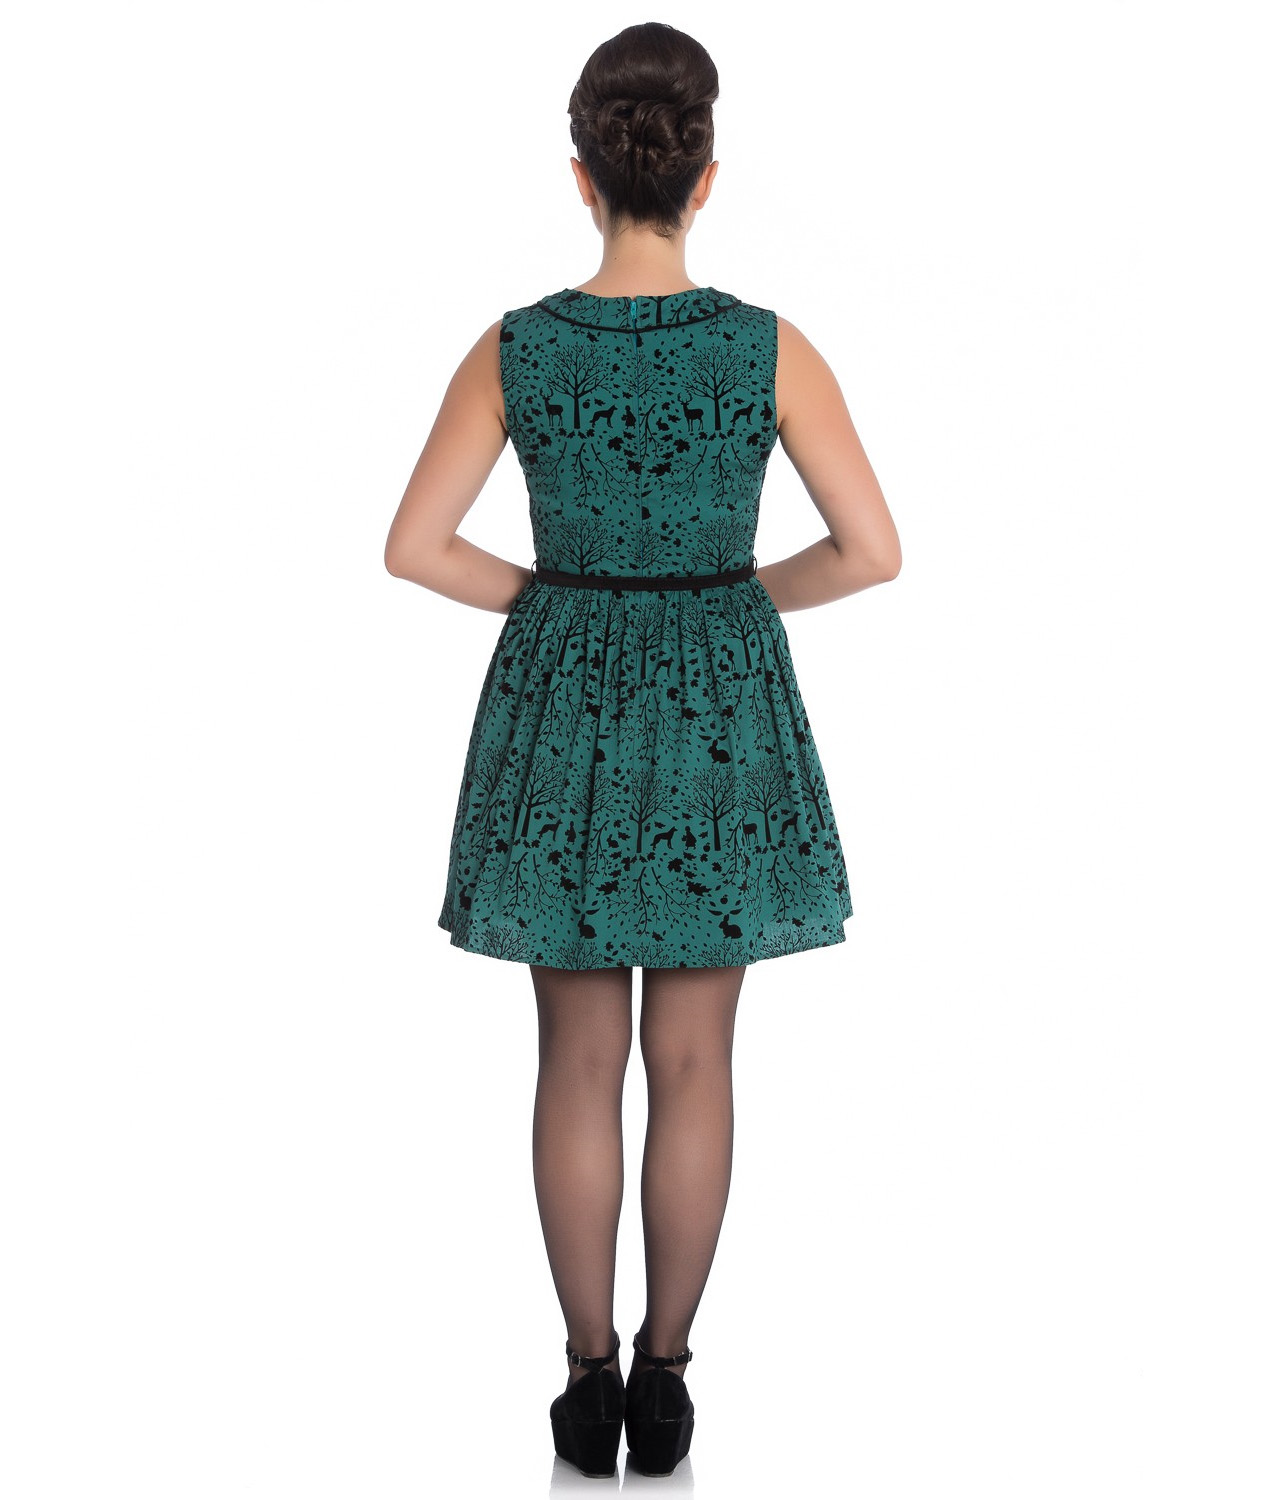 Hell-Bunny-50s-Mini-Skater-Dress-Woodland-Trees-SHERWOOD-Dark-Green-All-Sizes thumbnail 21